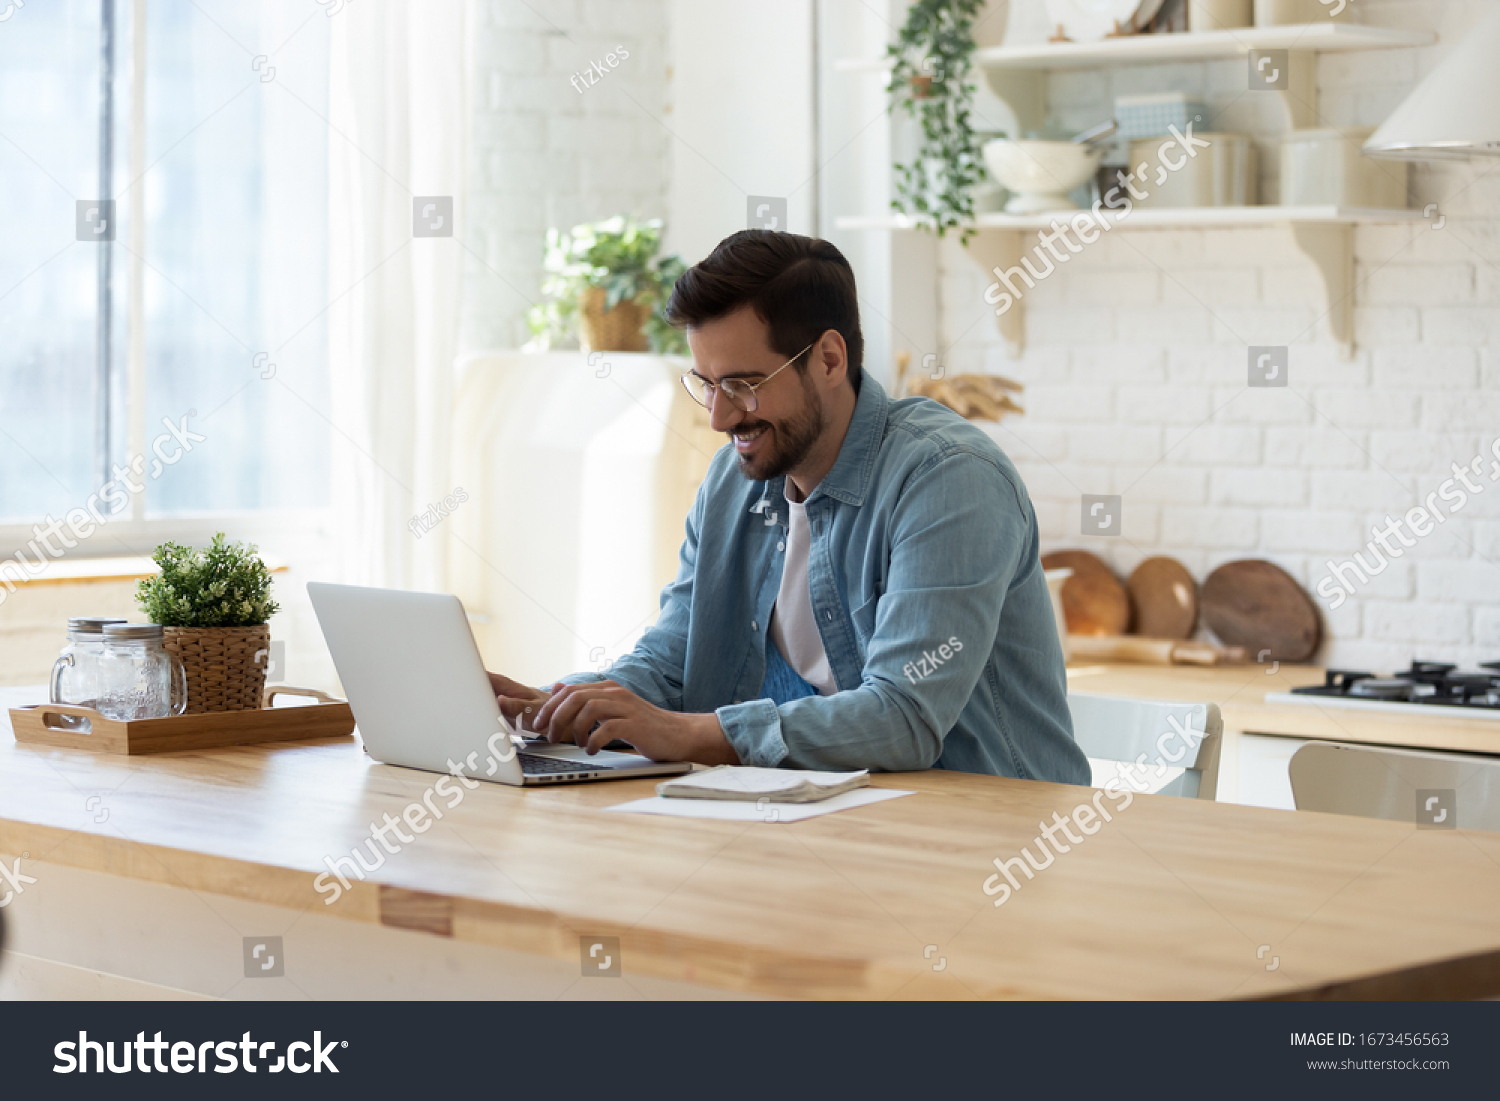 Smiling young man working on laptop in modern kitchen, checking email in morning, writing message in social network, happy young male using internet banking service, searching information #1673456563